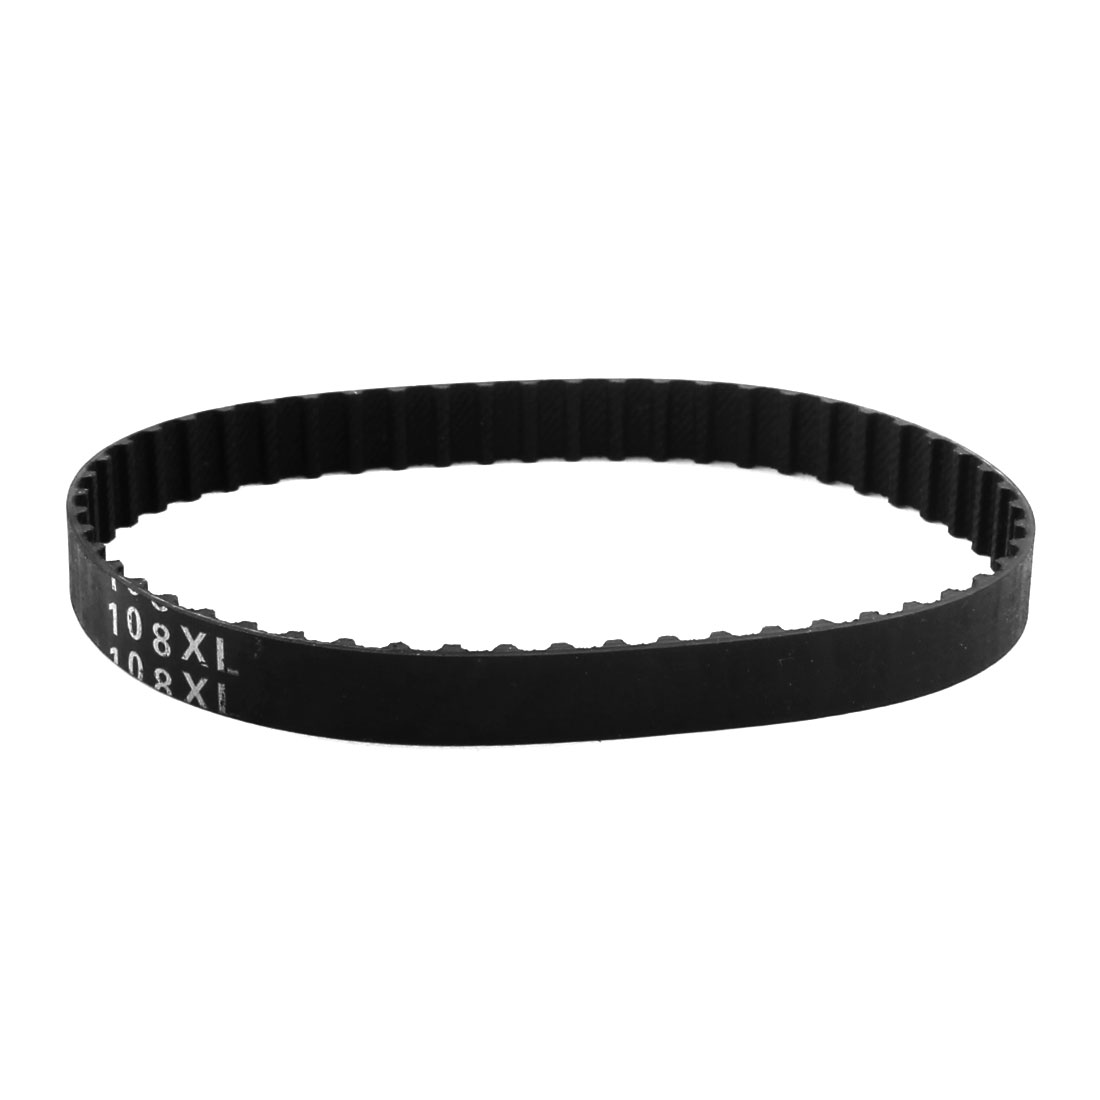 Black Rubber Speed Control Drive Timing Belt 54 Teeth 10mm Width 108XL